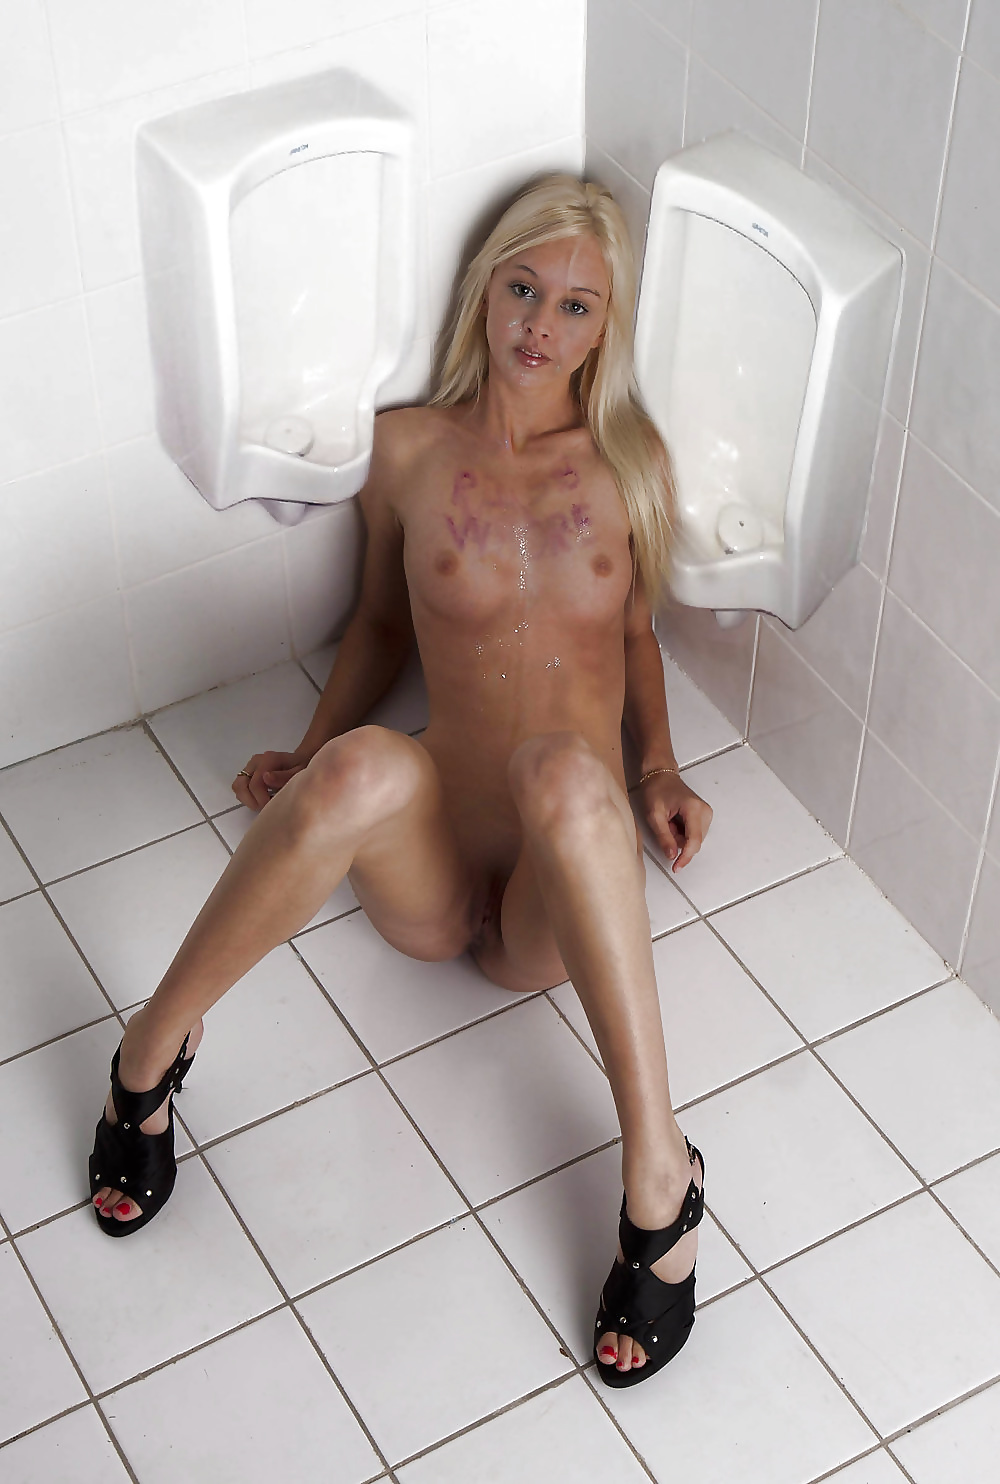 hot-the-urinal-nude-pussy-videos